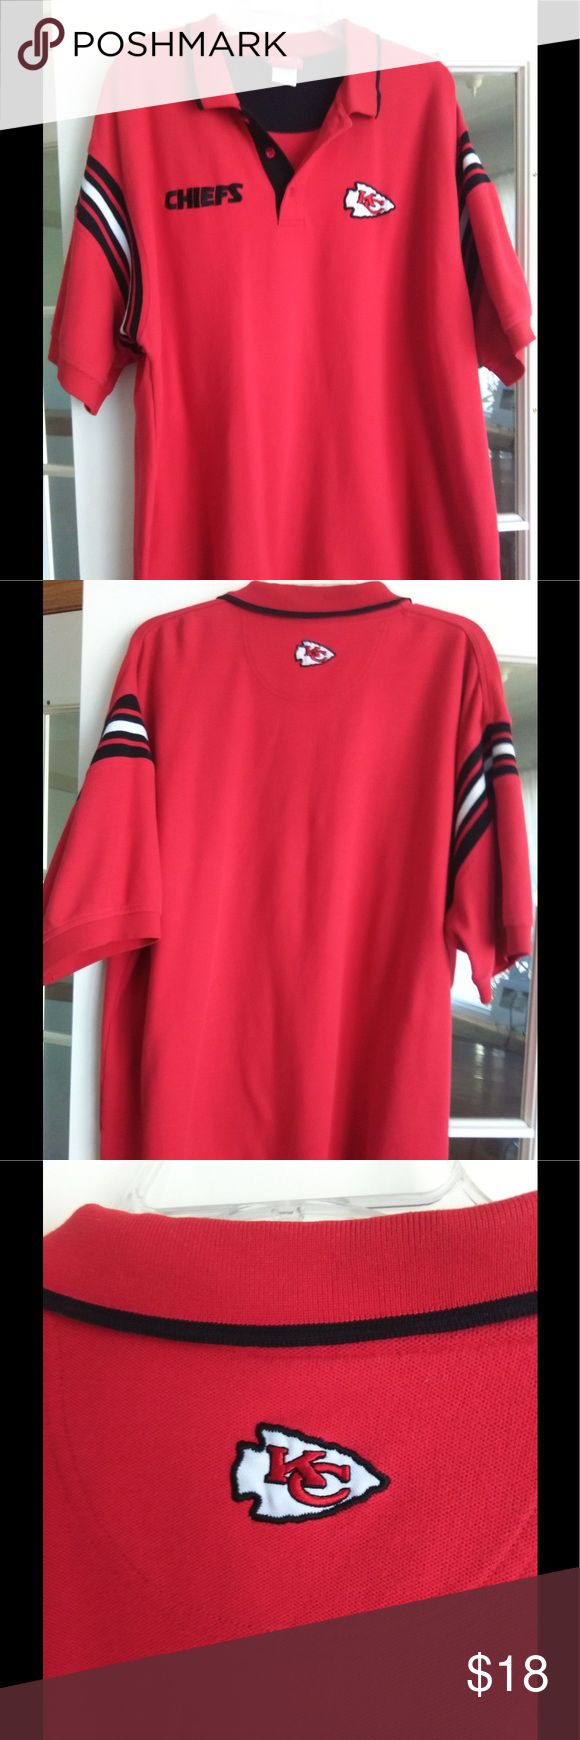 NFL Chiefs 2XL red polo shirt Lots of wear left in this great Chiefs shirt!  Measures 29 inches across and 31 inches from base of collar to bottom of hem.  Knit poly/cotton blend with embroidered team name on front and appliquéd arrowhead on front and back.  Pet-free, smoke-free home. NFL Shirts Polos